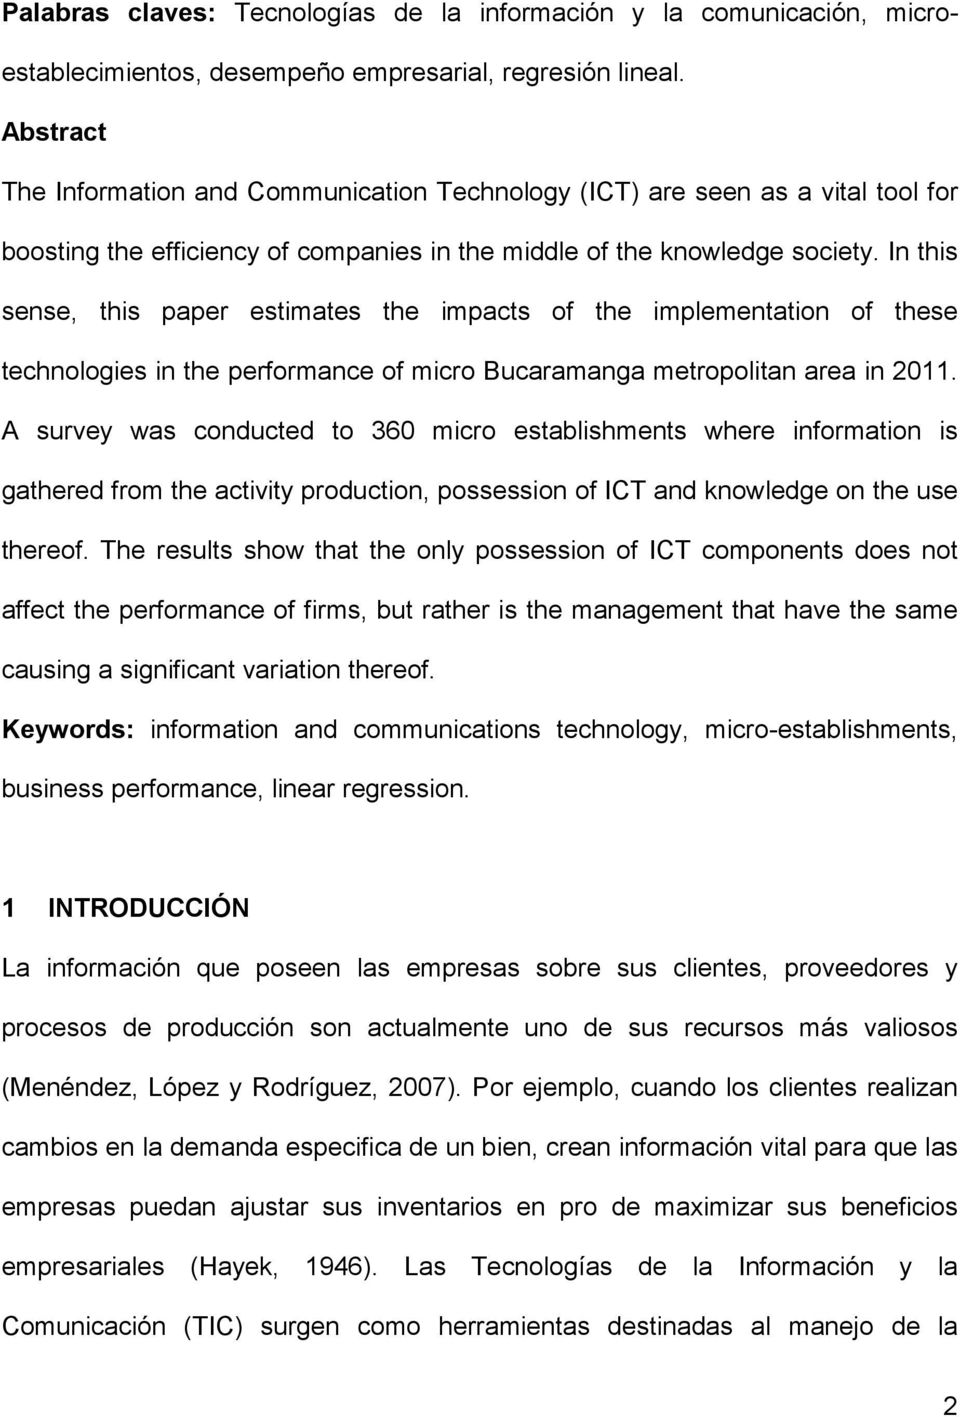 In this sense, this paper estimates the impacts of the implementation of these technologies in the performance of micro Bucaramanga metropolitan area in 2011.